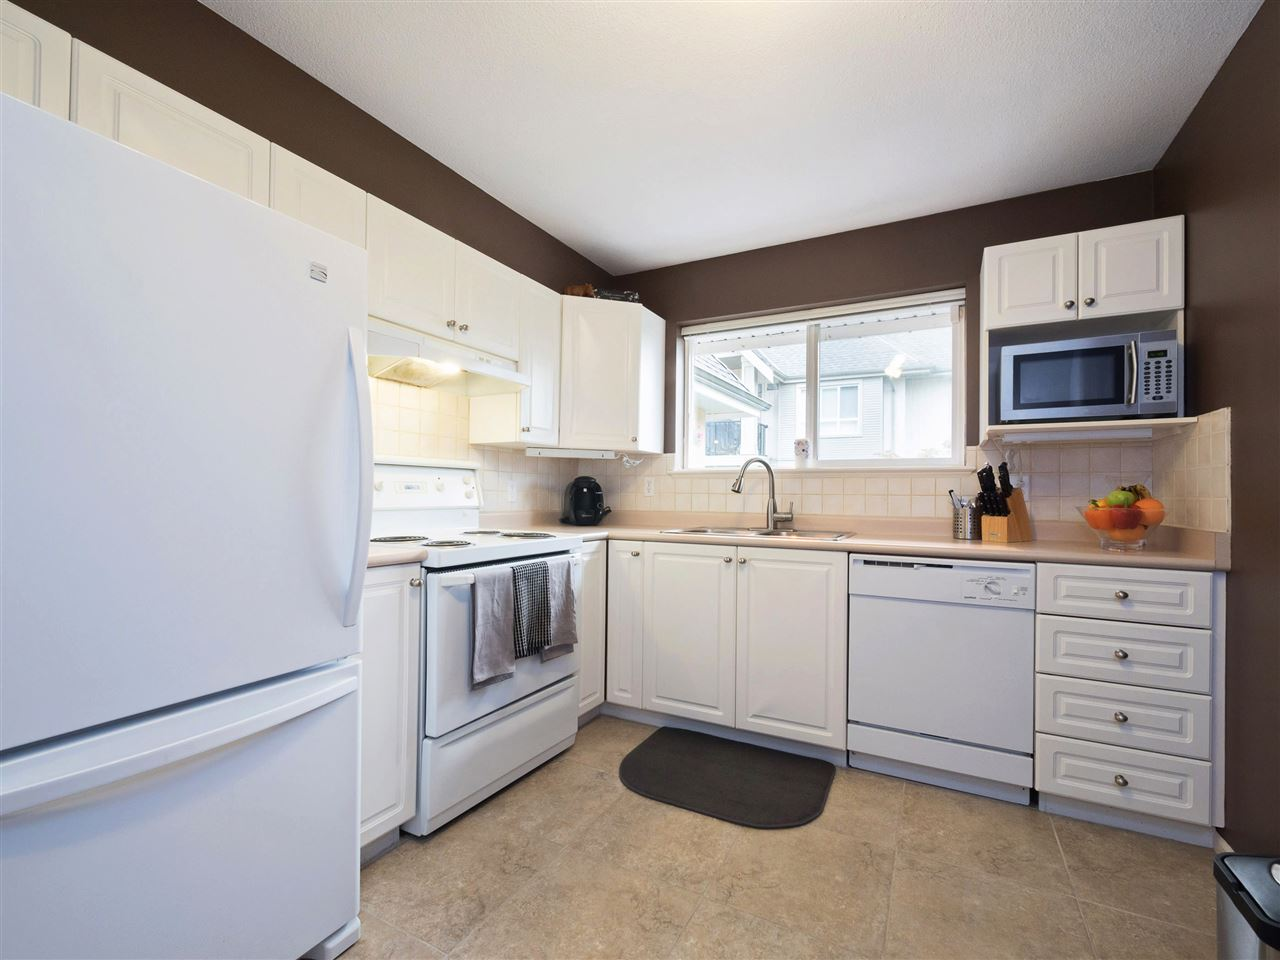 Condo Apartment at 301 1558 GRANT AVENUE, Unit 301, Port Coquitlam, British Columbia. Image 8